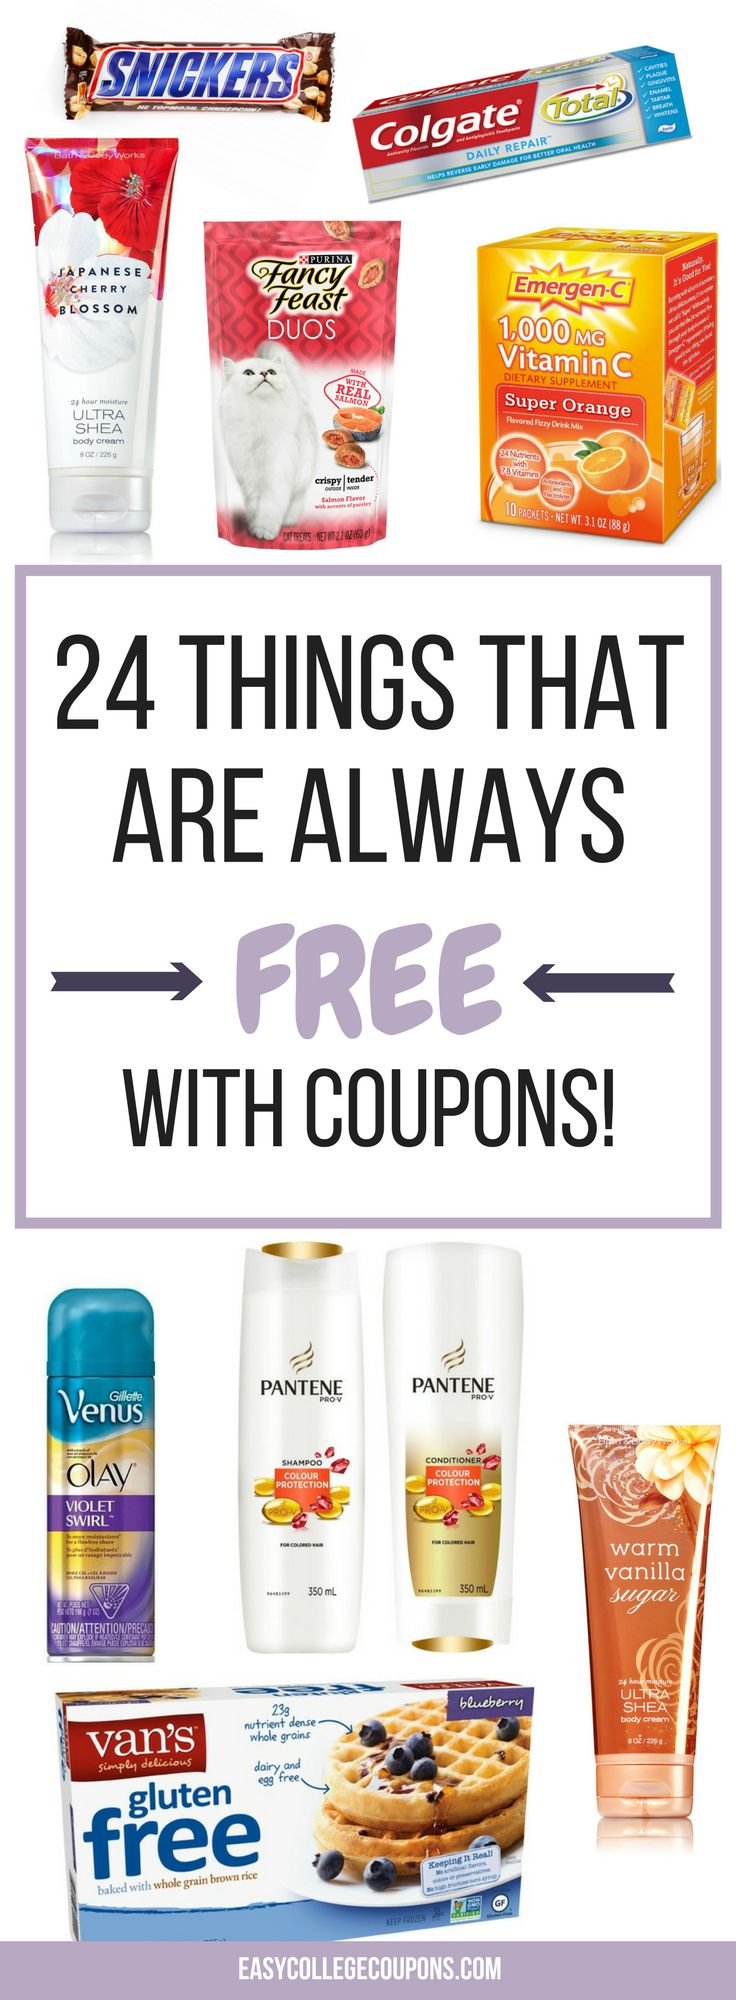 Things that are free with coupons | Free Stuff | Freebies | Couponing for Beginners | Save Money on Groceries or Make Up